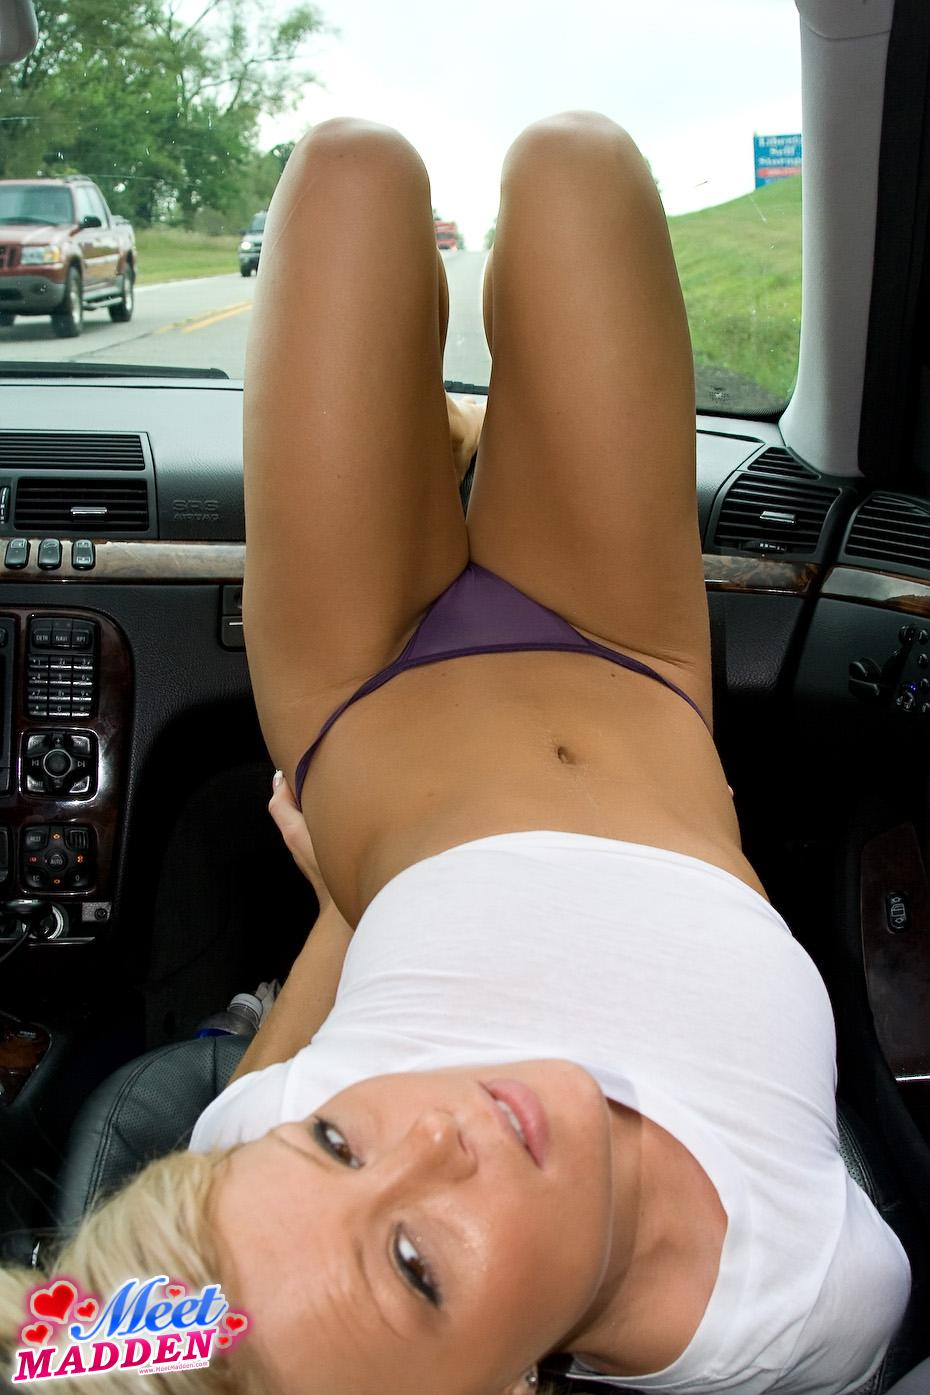 A blonde girl relaxes by putting her feet up on the dashboard of her car